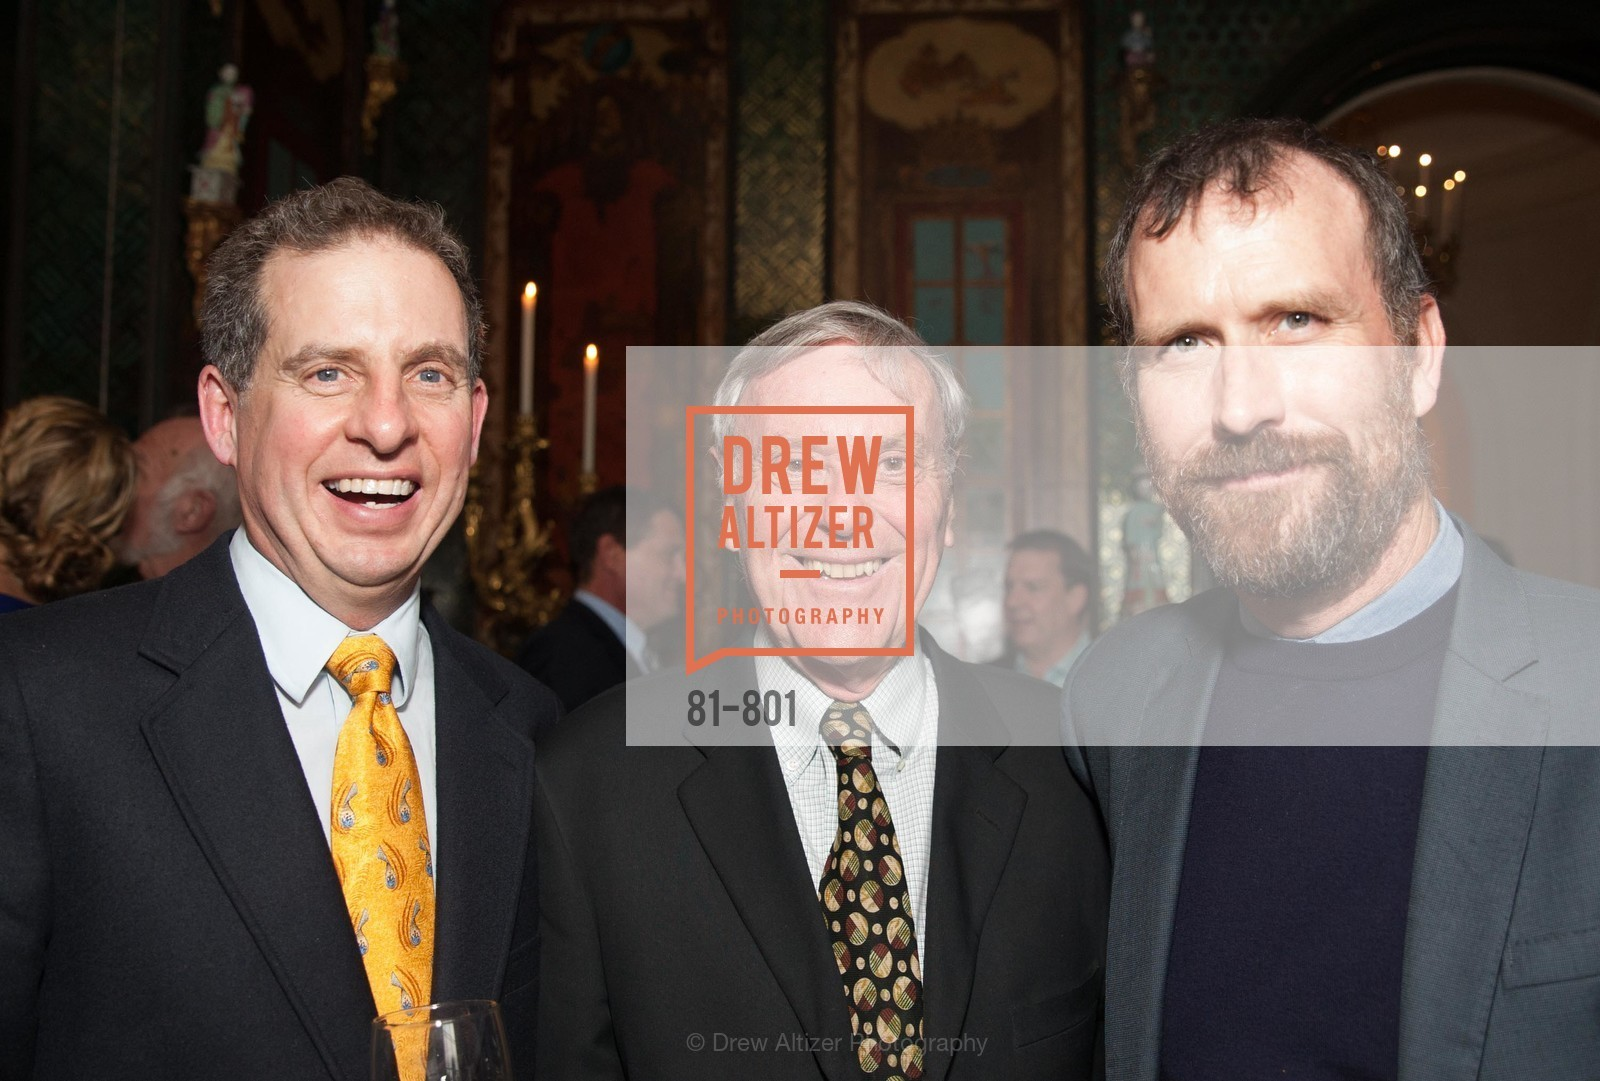 Brian Howell, Clem Shute, Henry Gilbert, GETTY Hosts Leakey Foundation Dinner, US, April 24th, 2015,Drew Altizer, Drew Altizer Photography, full-service agency, private events, San Francisco photographer, photographer california